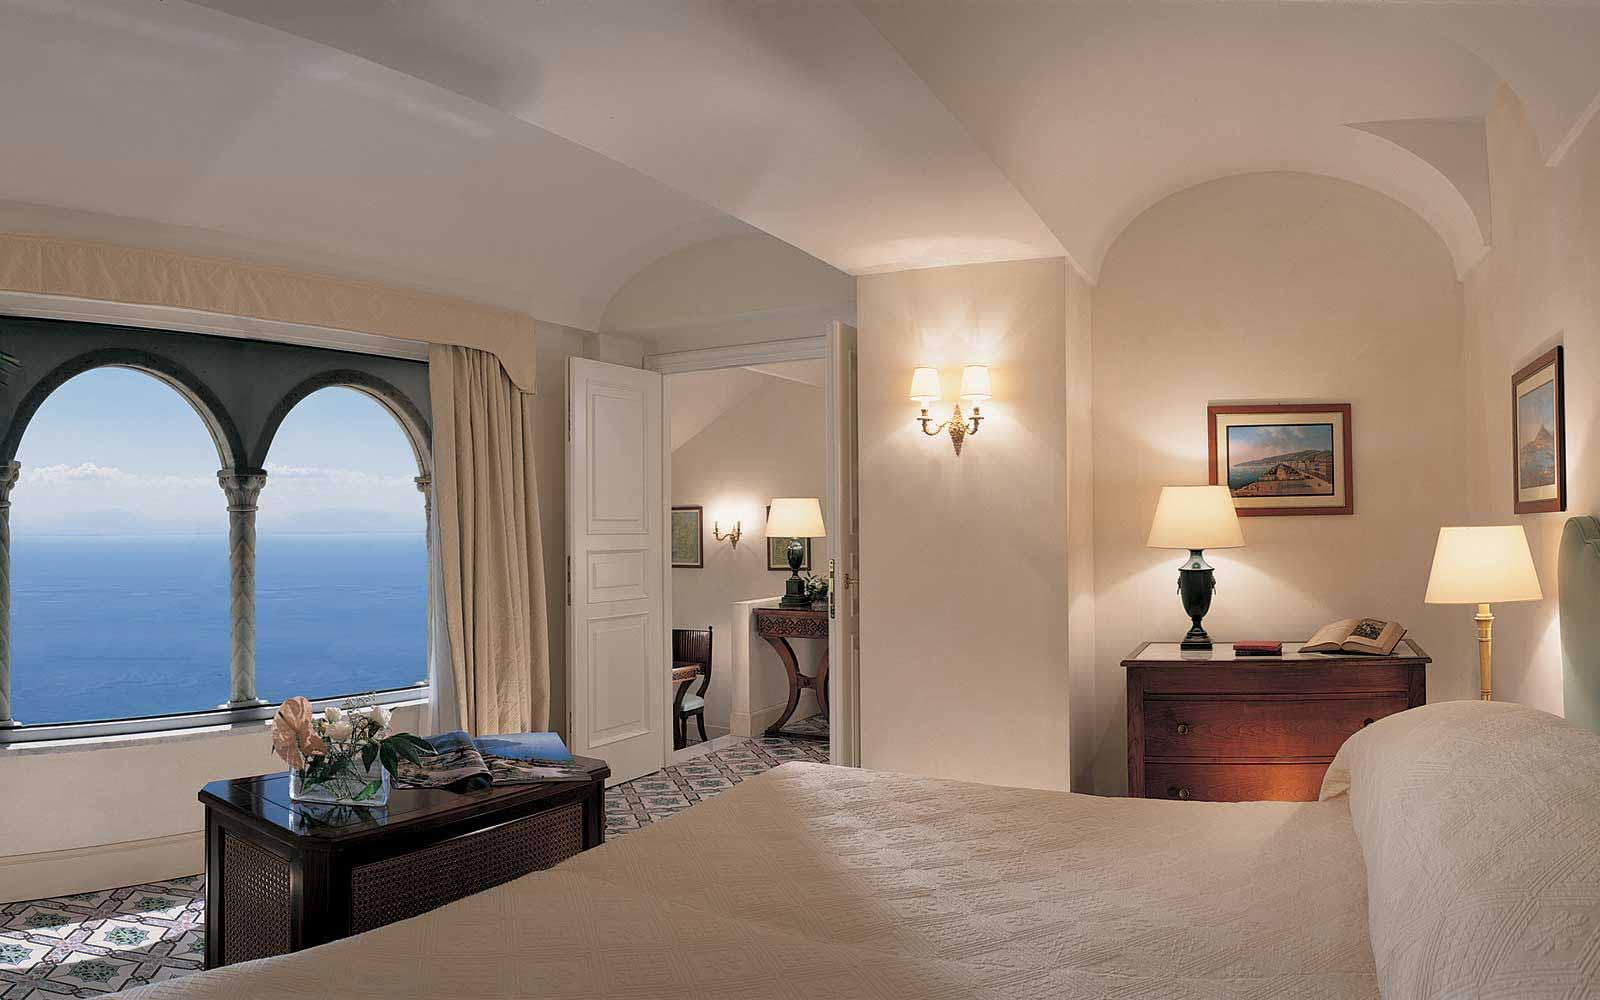 Deluxe Suite at Belmond Hotel Caruso